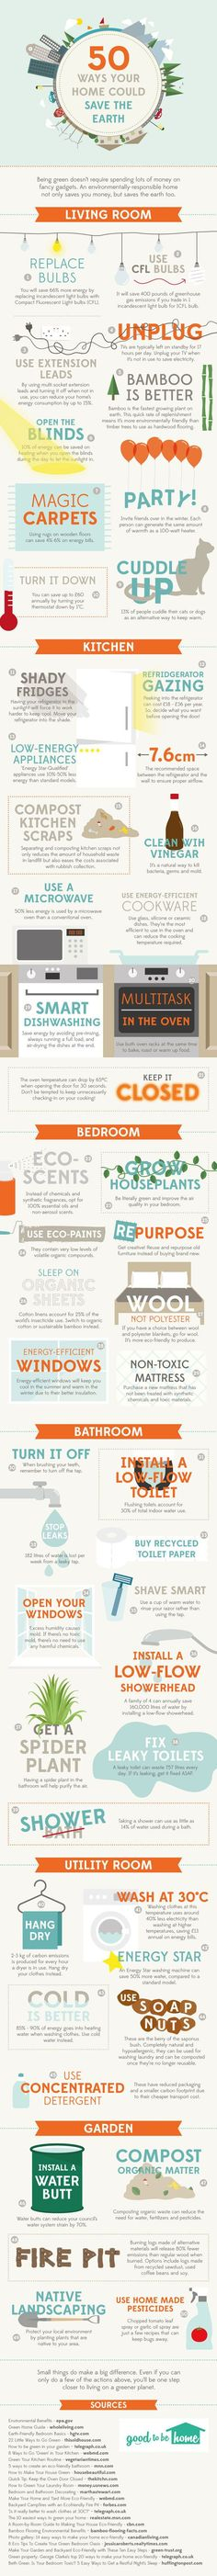 50 ways your home can save the earth.